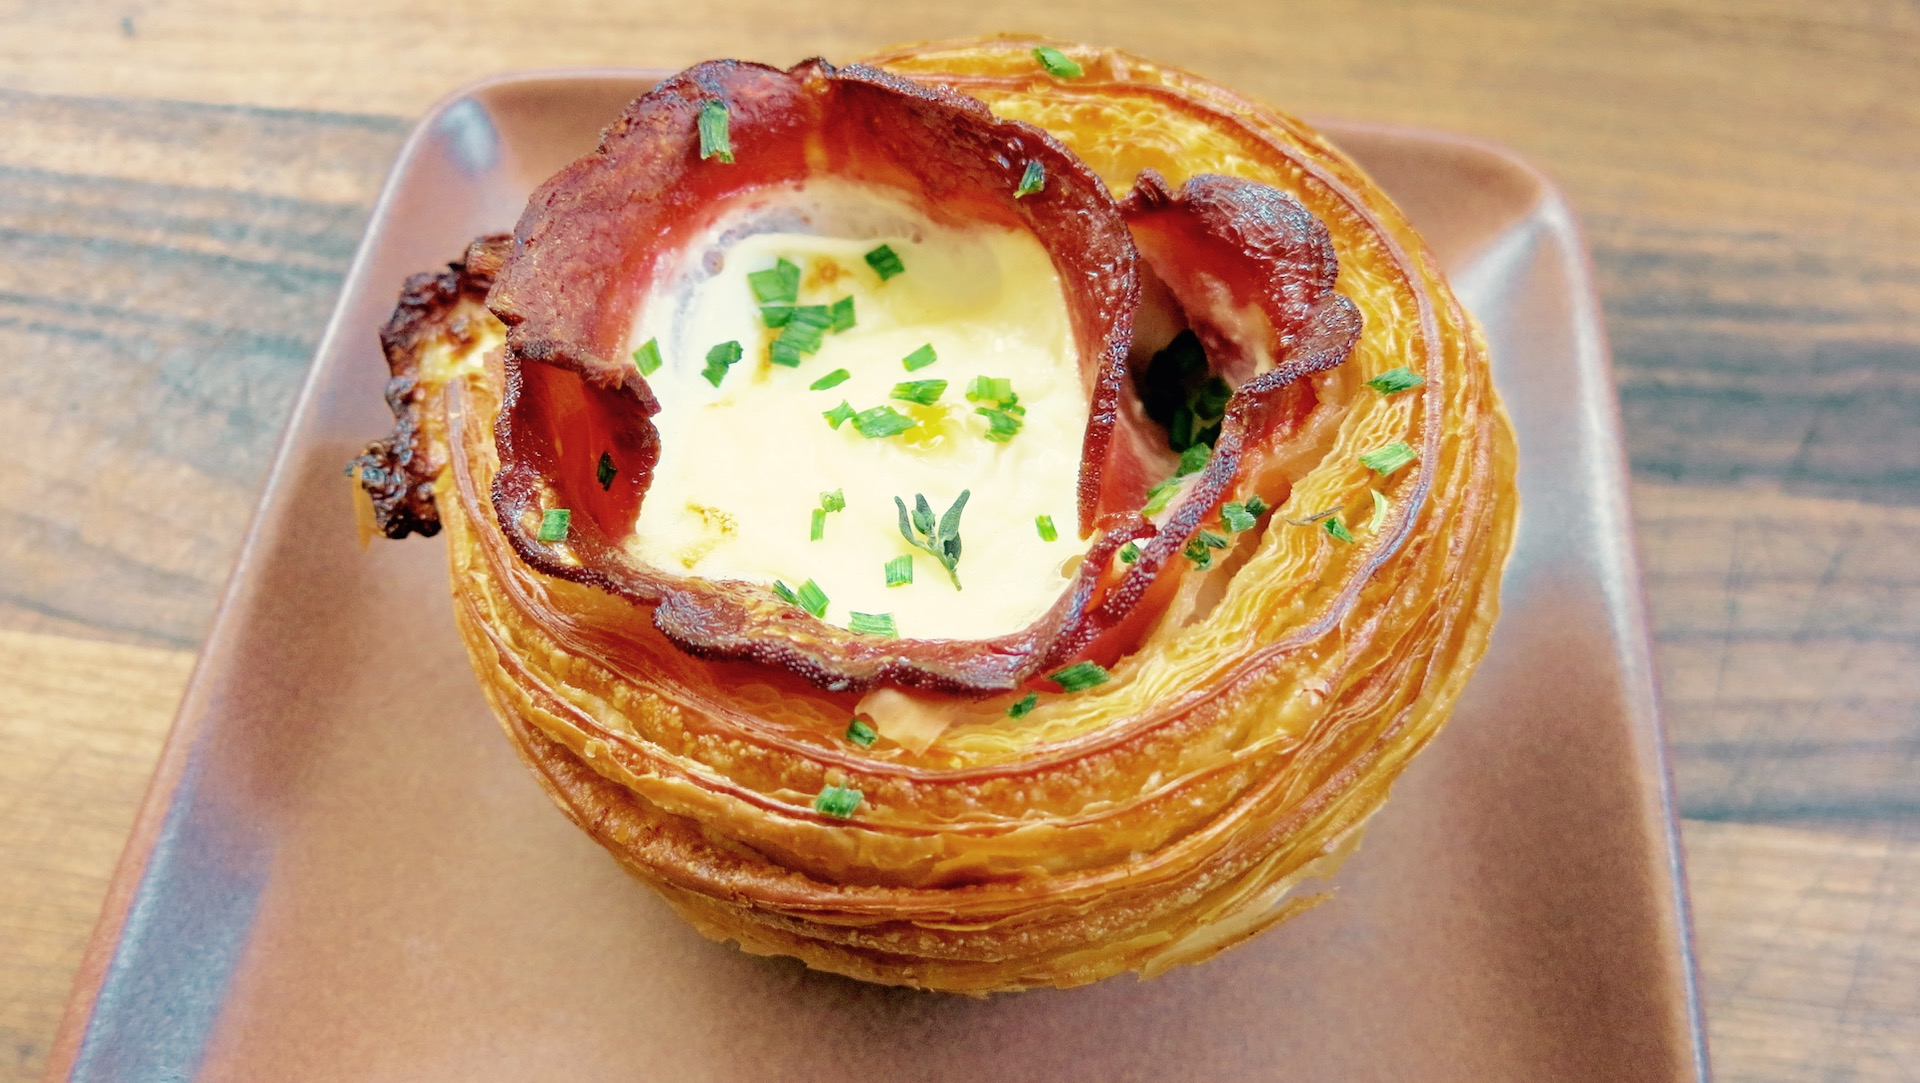 The magnificent ham-and-cheese croissant from Fournée Bakery.